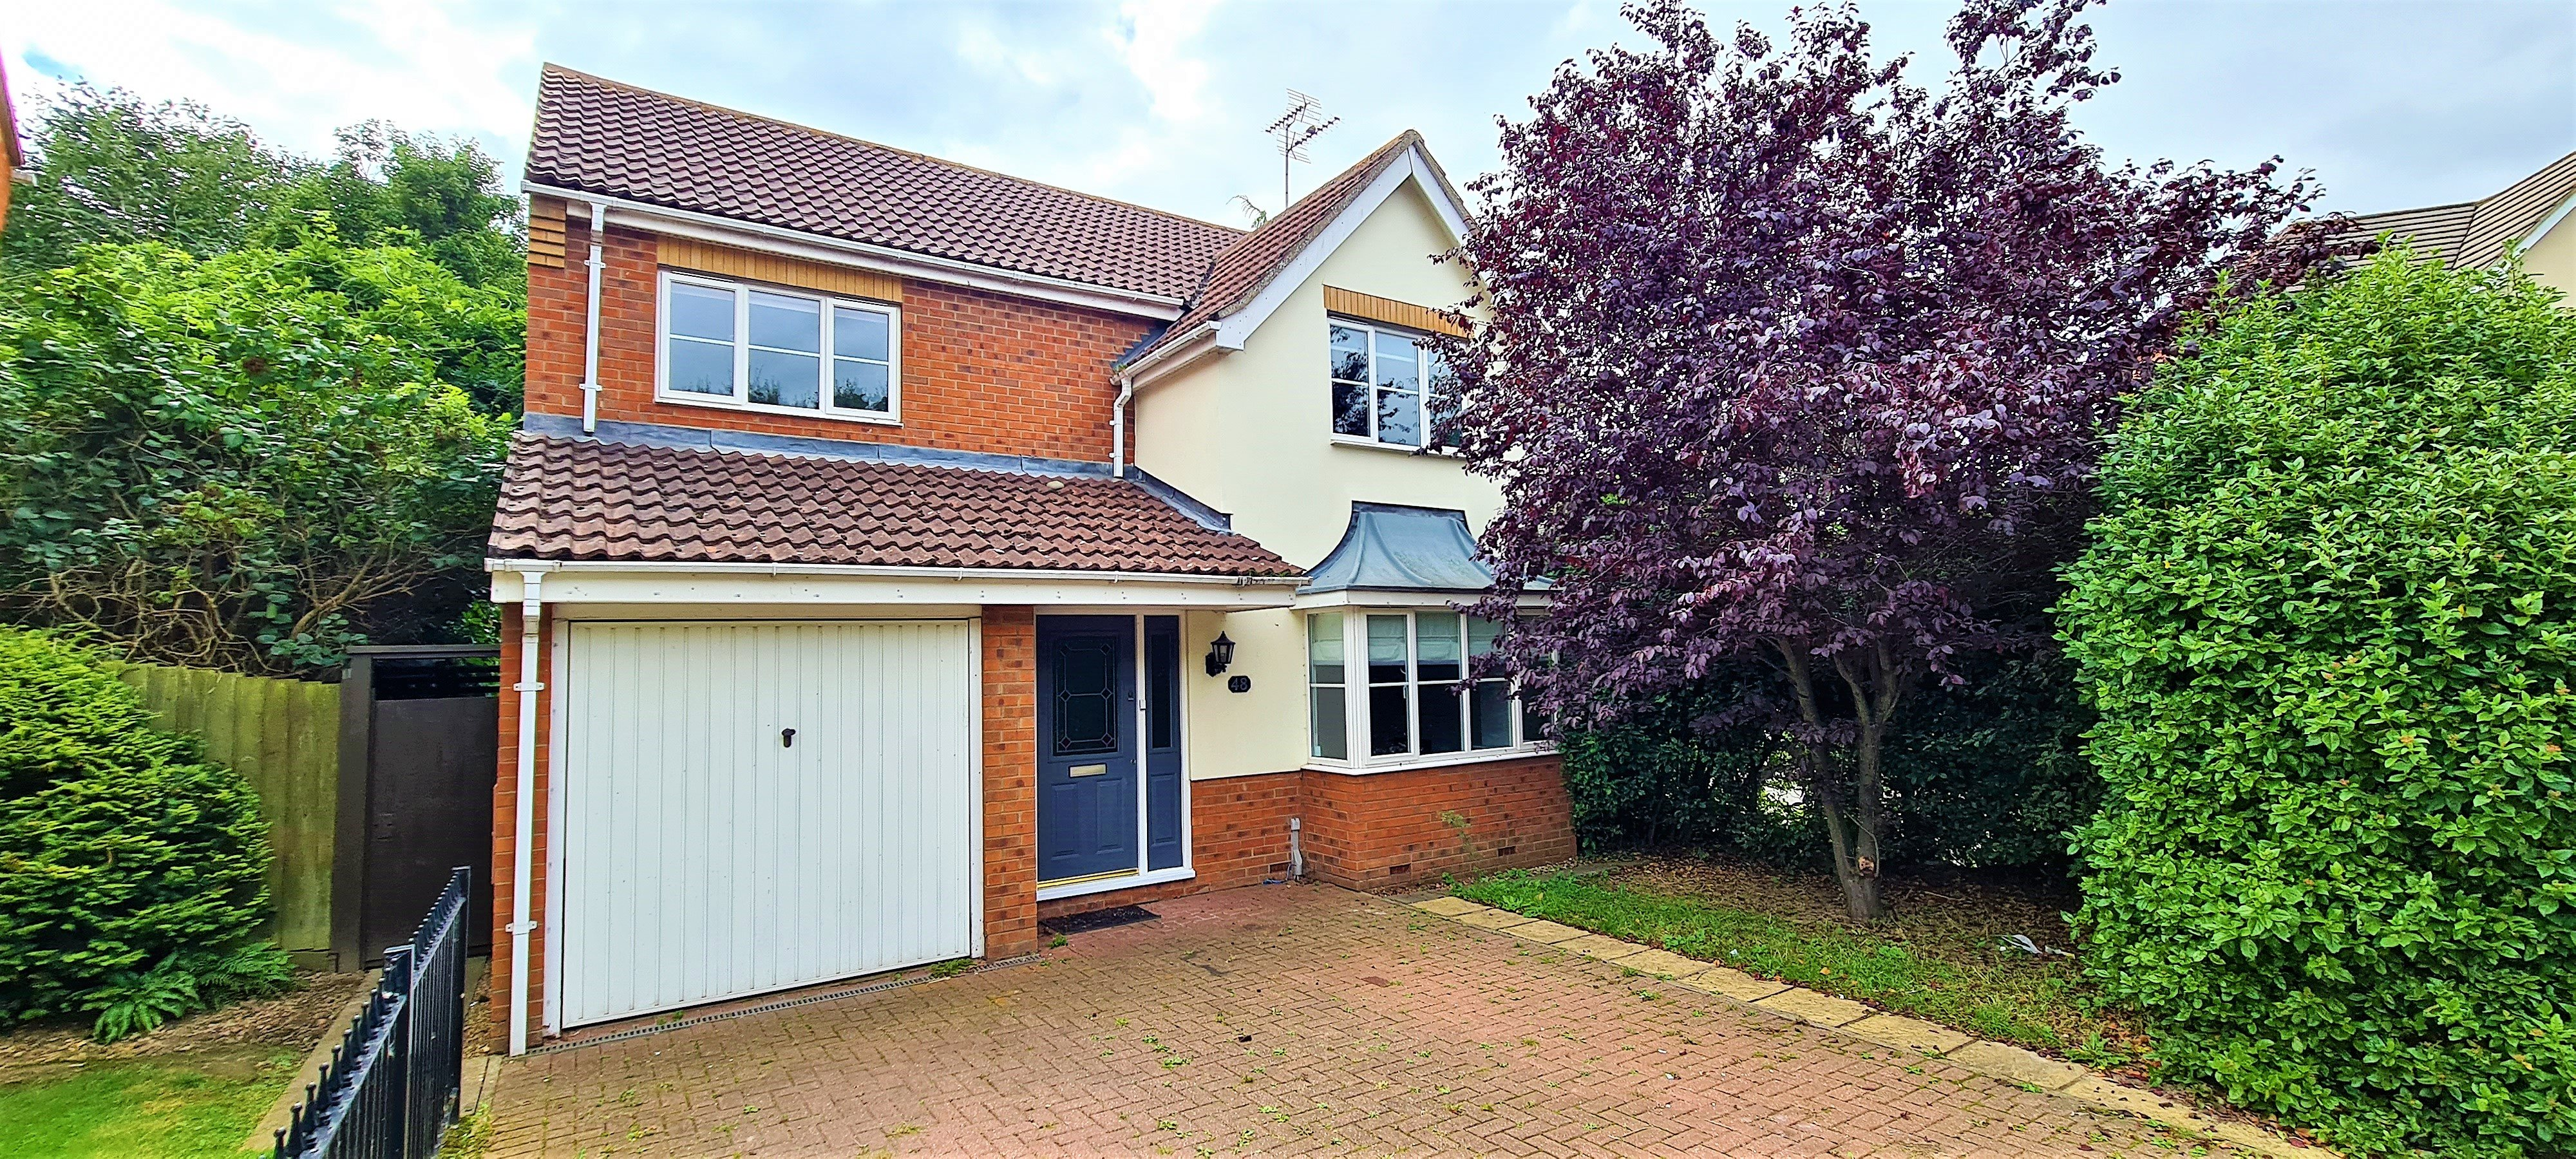 4 bed house to rent in Waterson Vale, Chelmsford 0